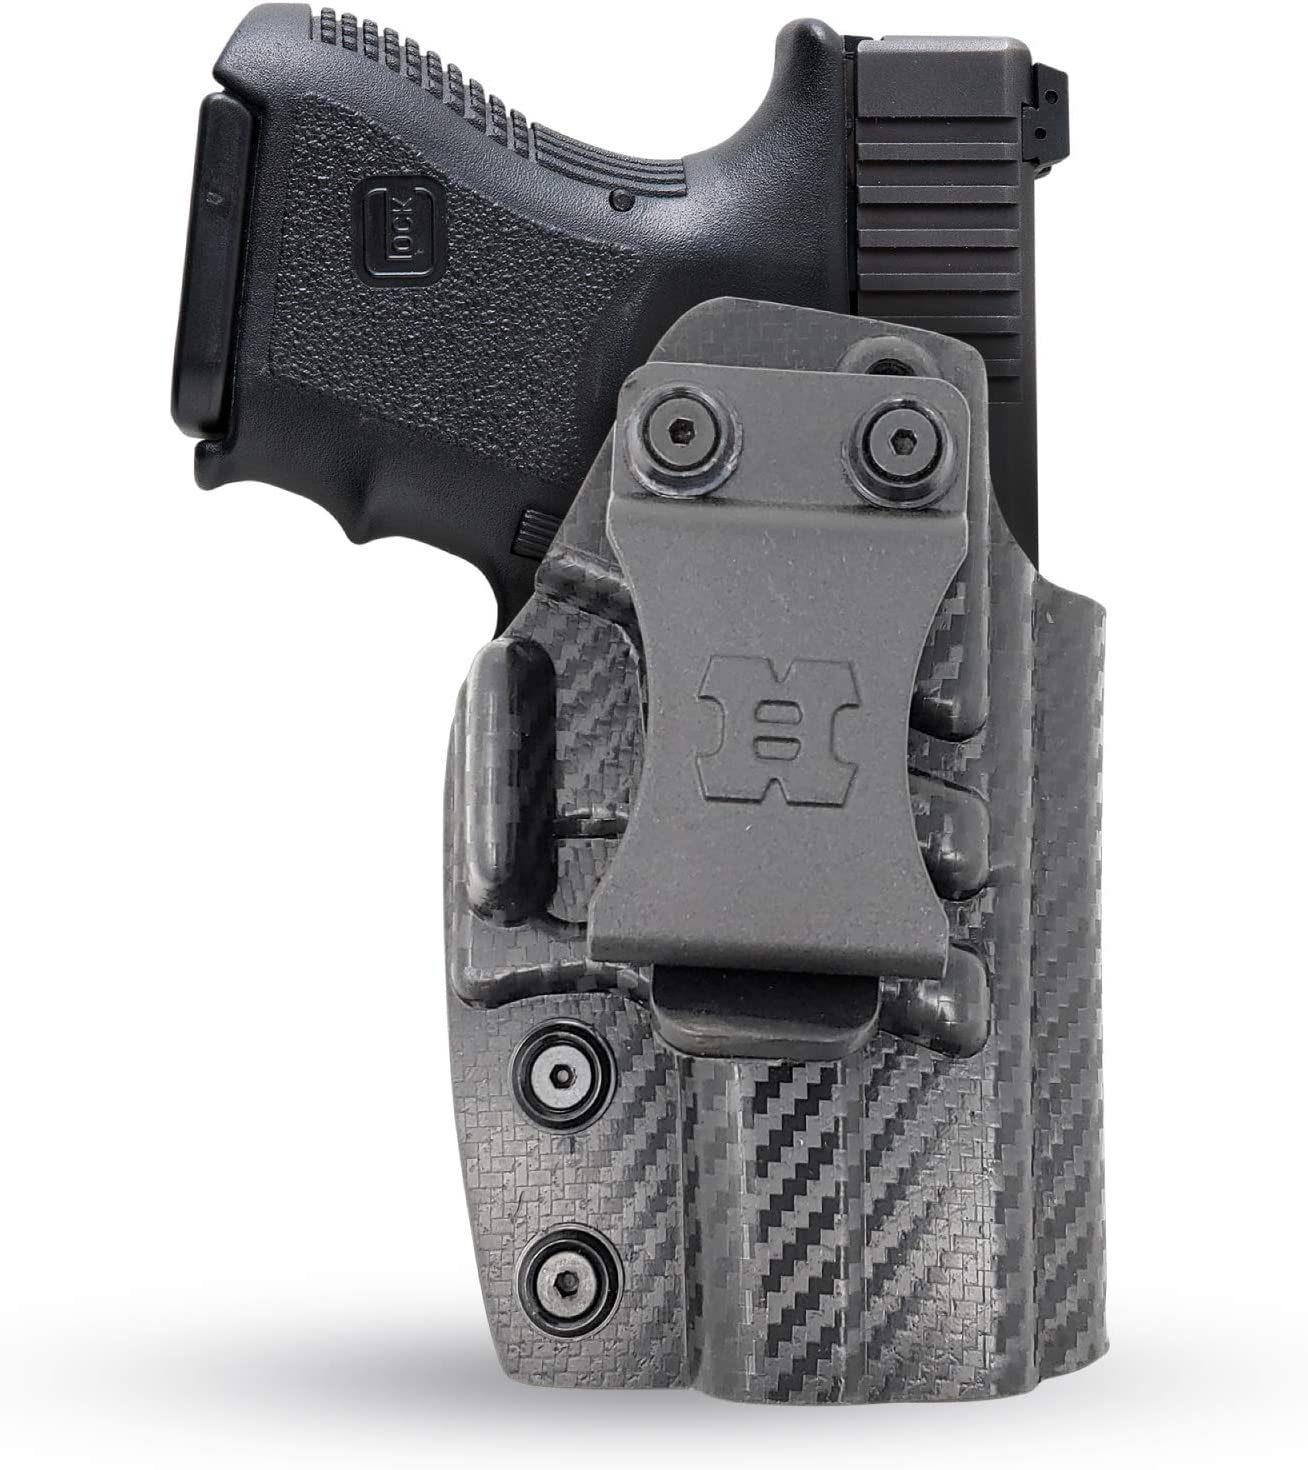 Concealed Carry Spring new work Iwb Kydex Holster - Lined by Houston Rapid rise Inside fo